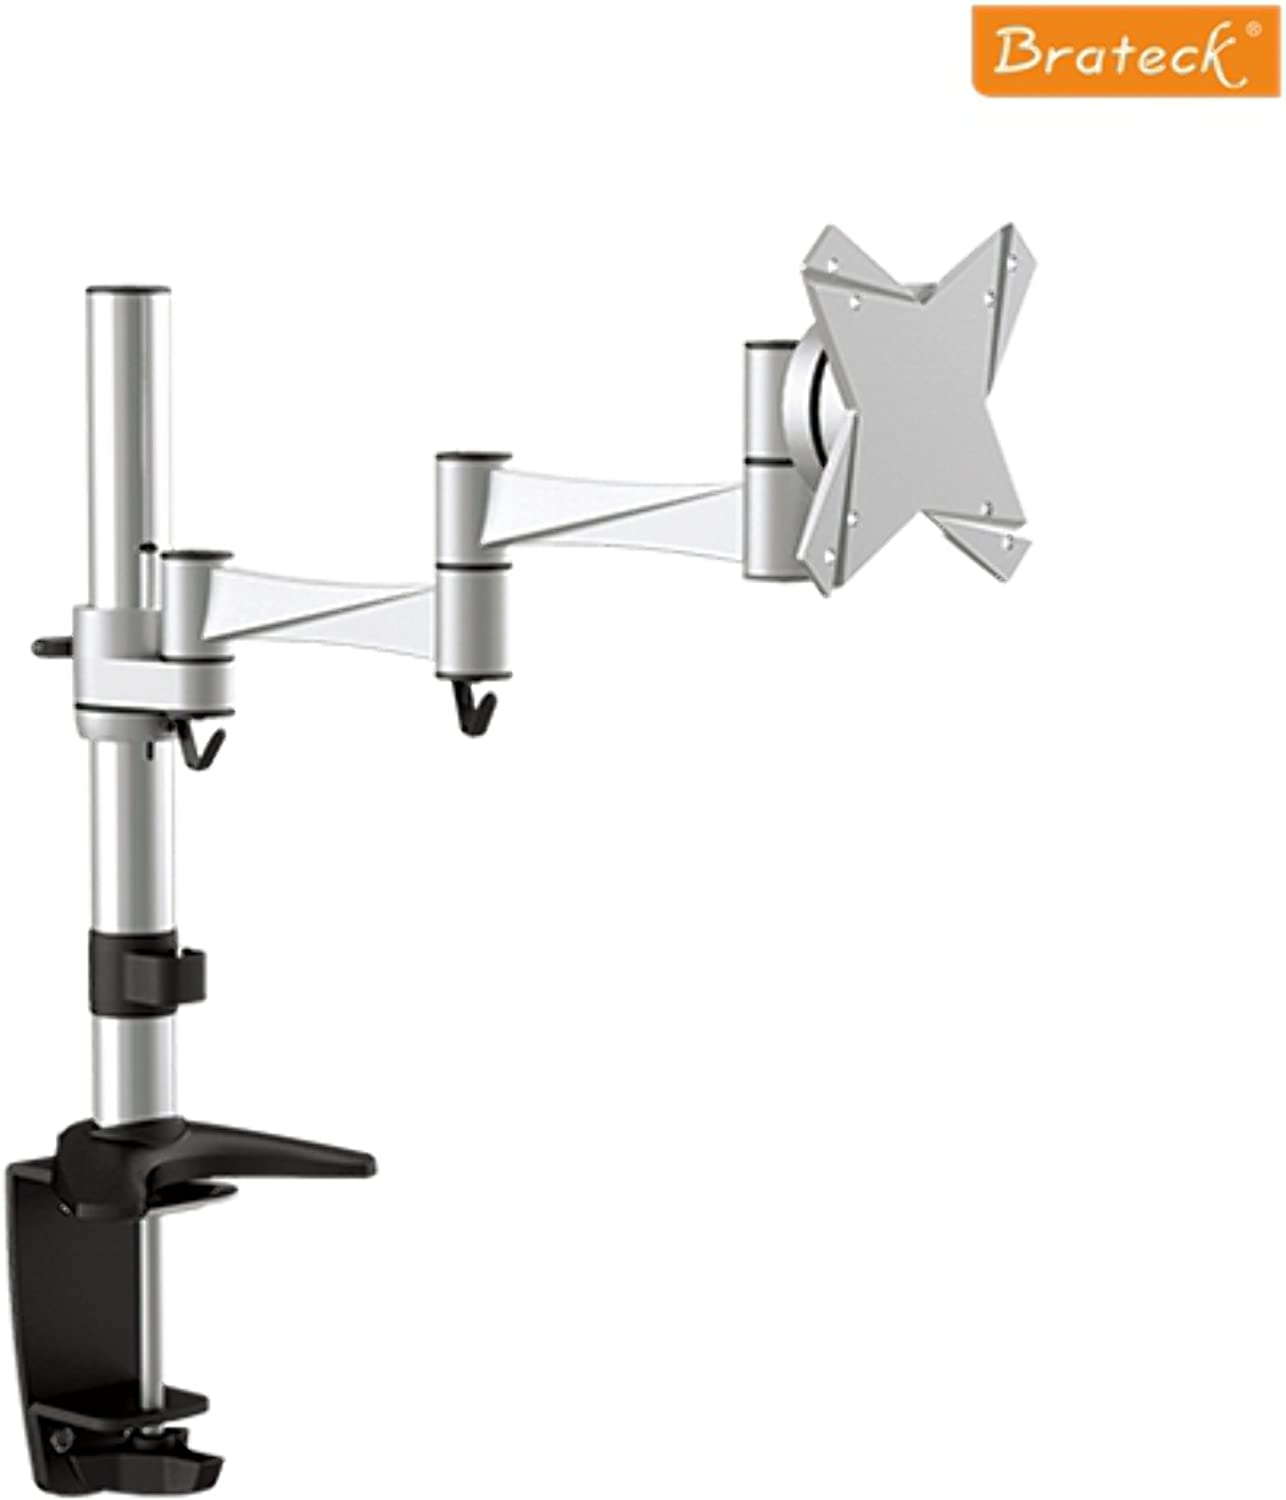 Brateck Single Flexi Arm Monitor Mount Up to 27'